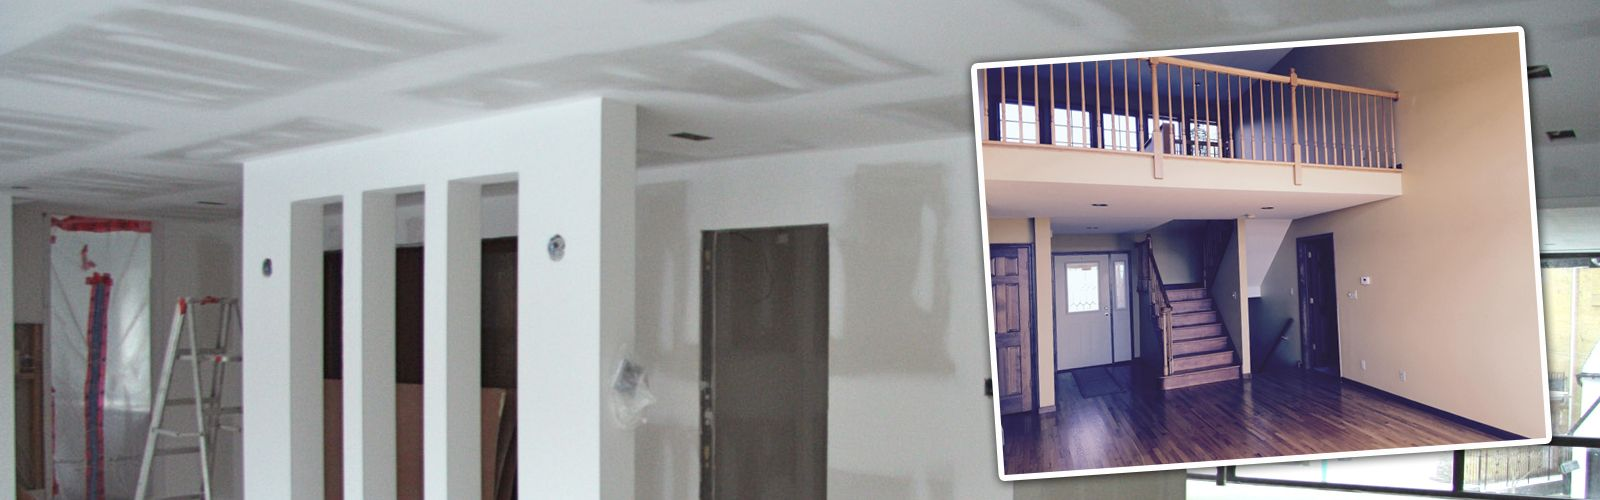 Drywall Installations Services